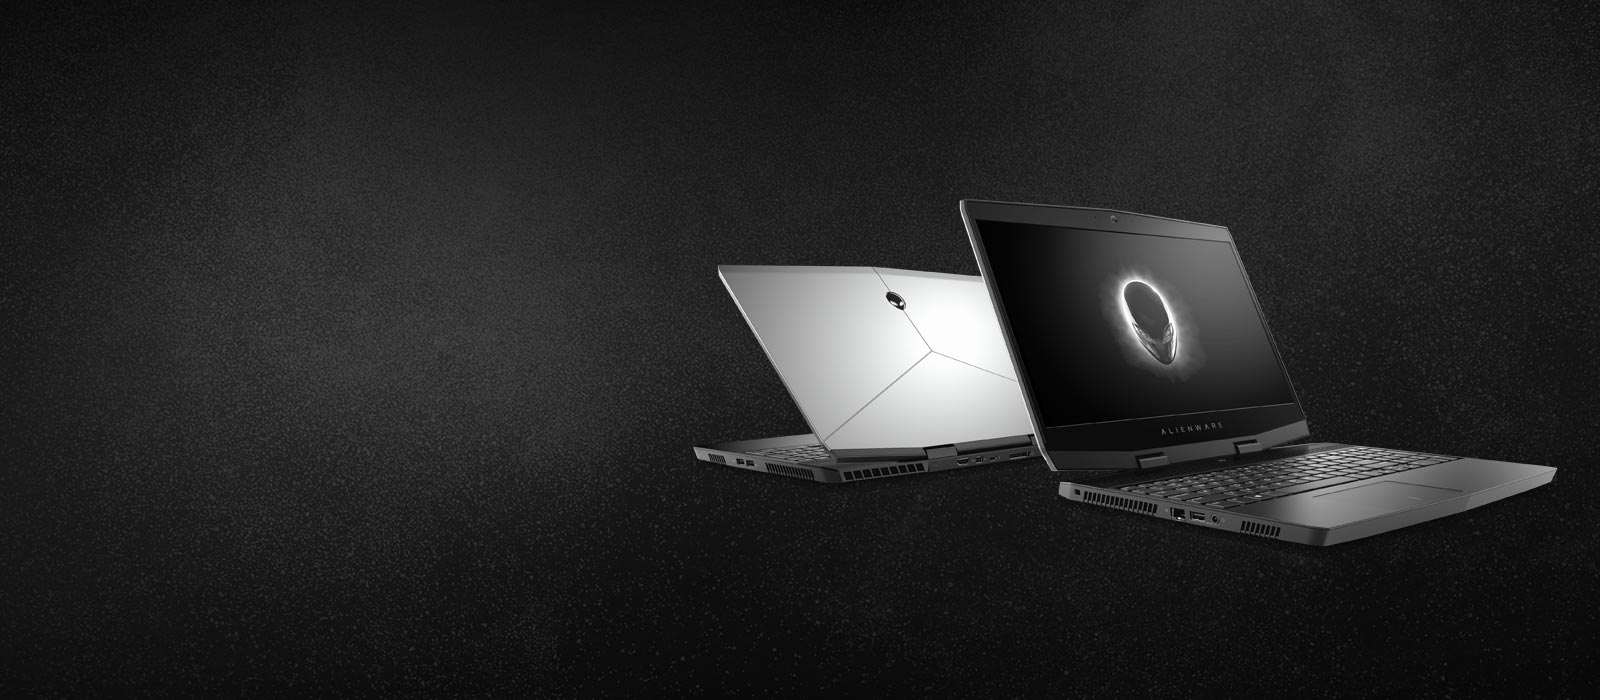 alienware-gaming-deal-q2w11-1600x700.jpg